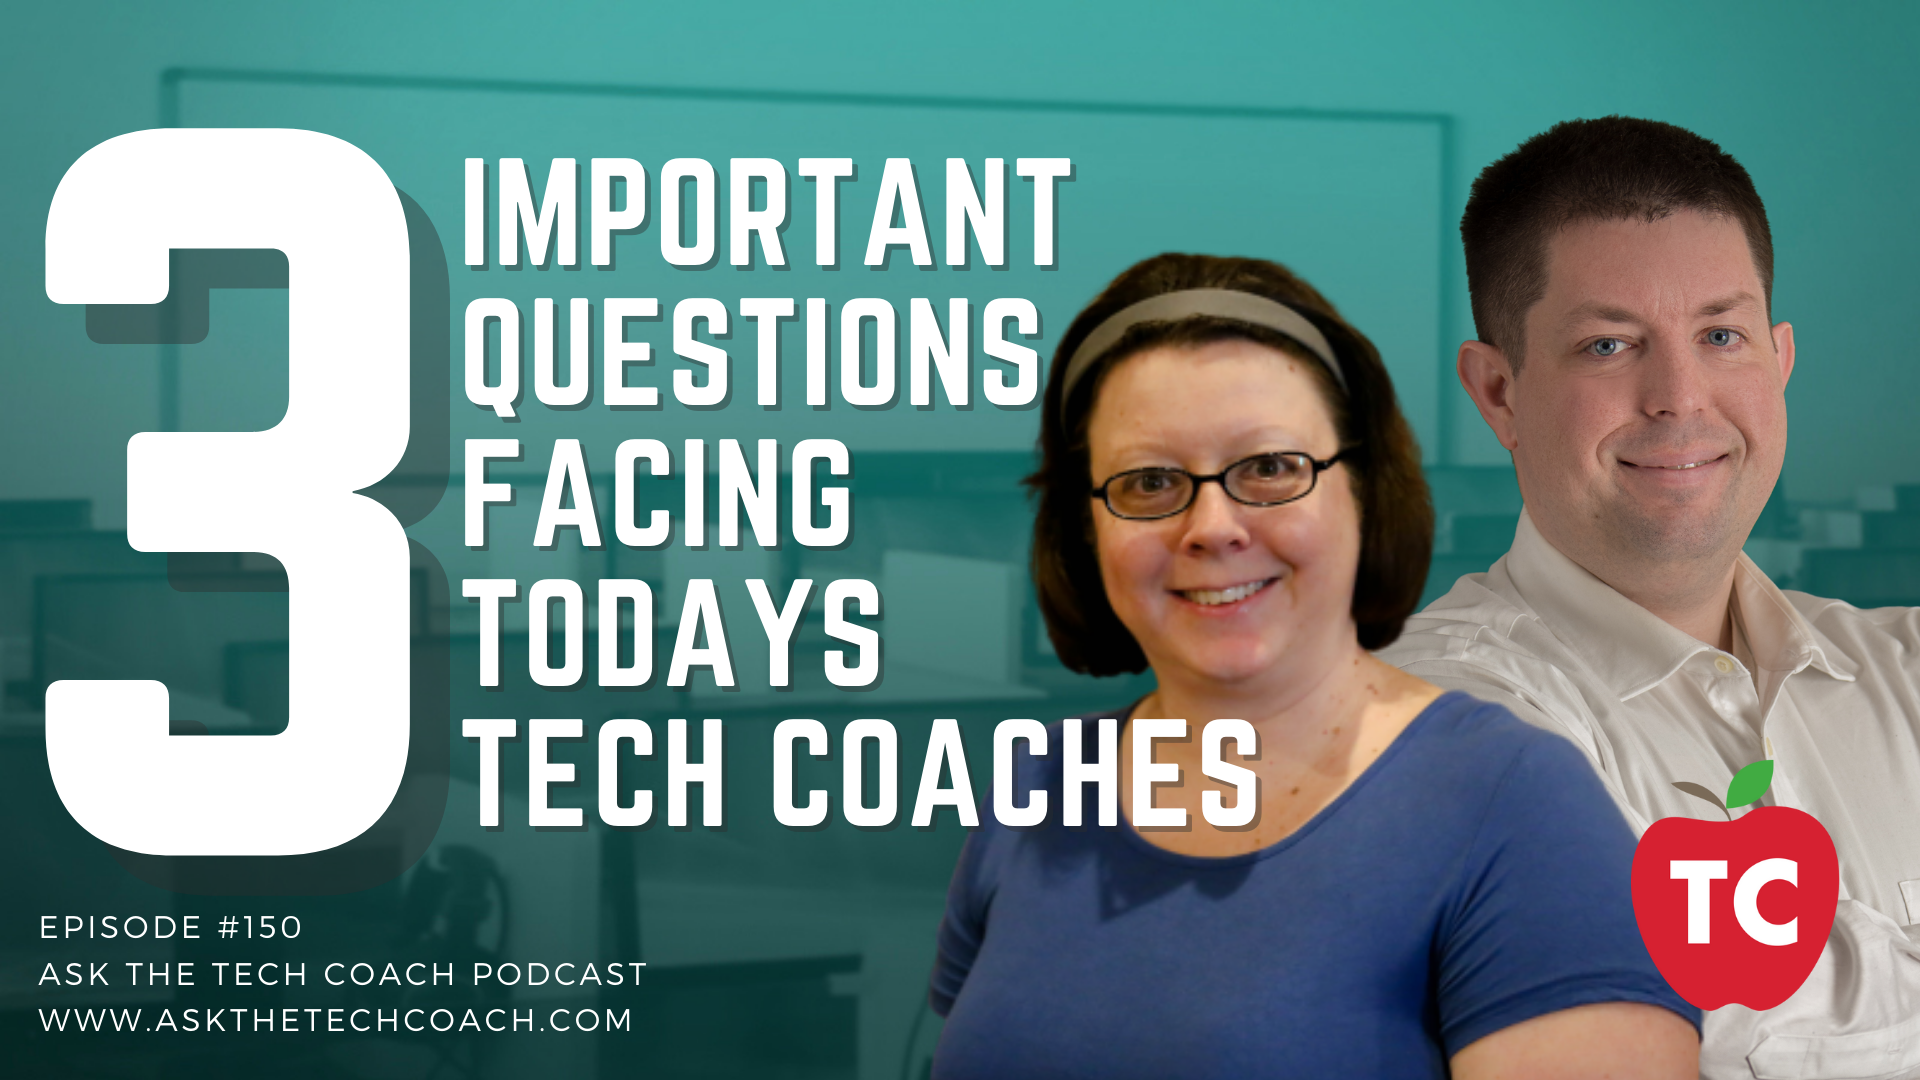 What are the 3 Most Important Questions Facing Tech Coaches Today?